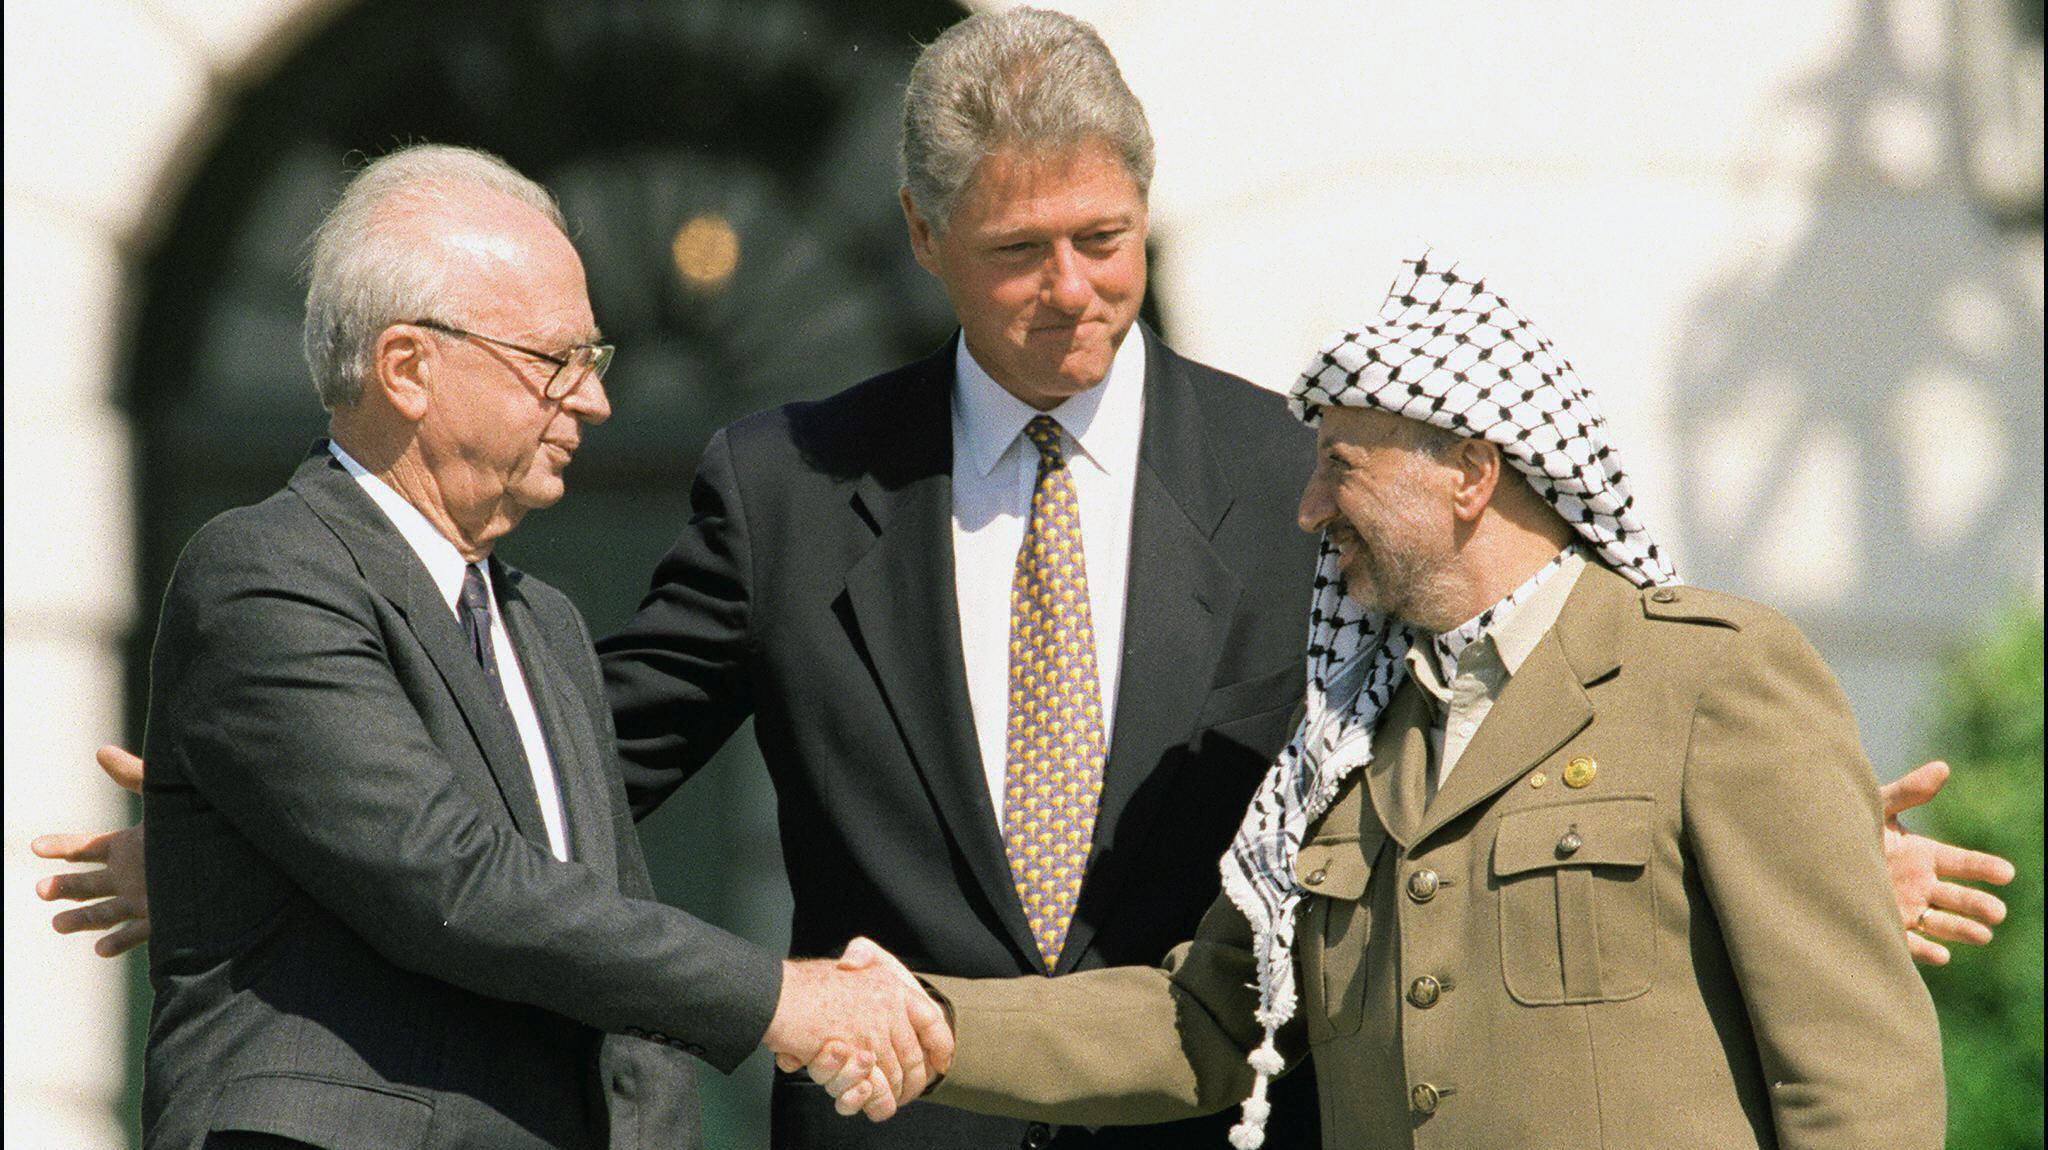 Israeli-Palestinian peace talks were launched 20 years ago when Israeli Prime Minister Yitzhak Rabin (left), Palestinian leader Yasser Arafat (right) and President Bill Clinton met at the White House on Sept. 13, 1993. But today, some of the issues appear more intractable than ever.